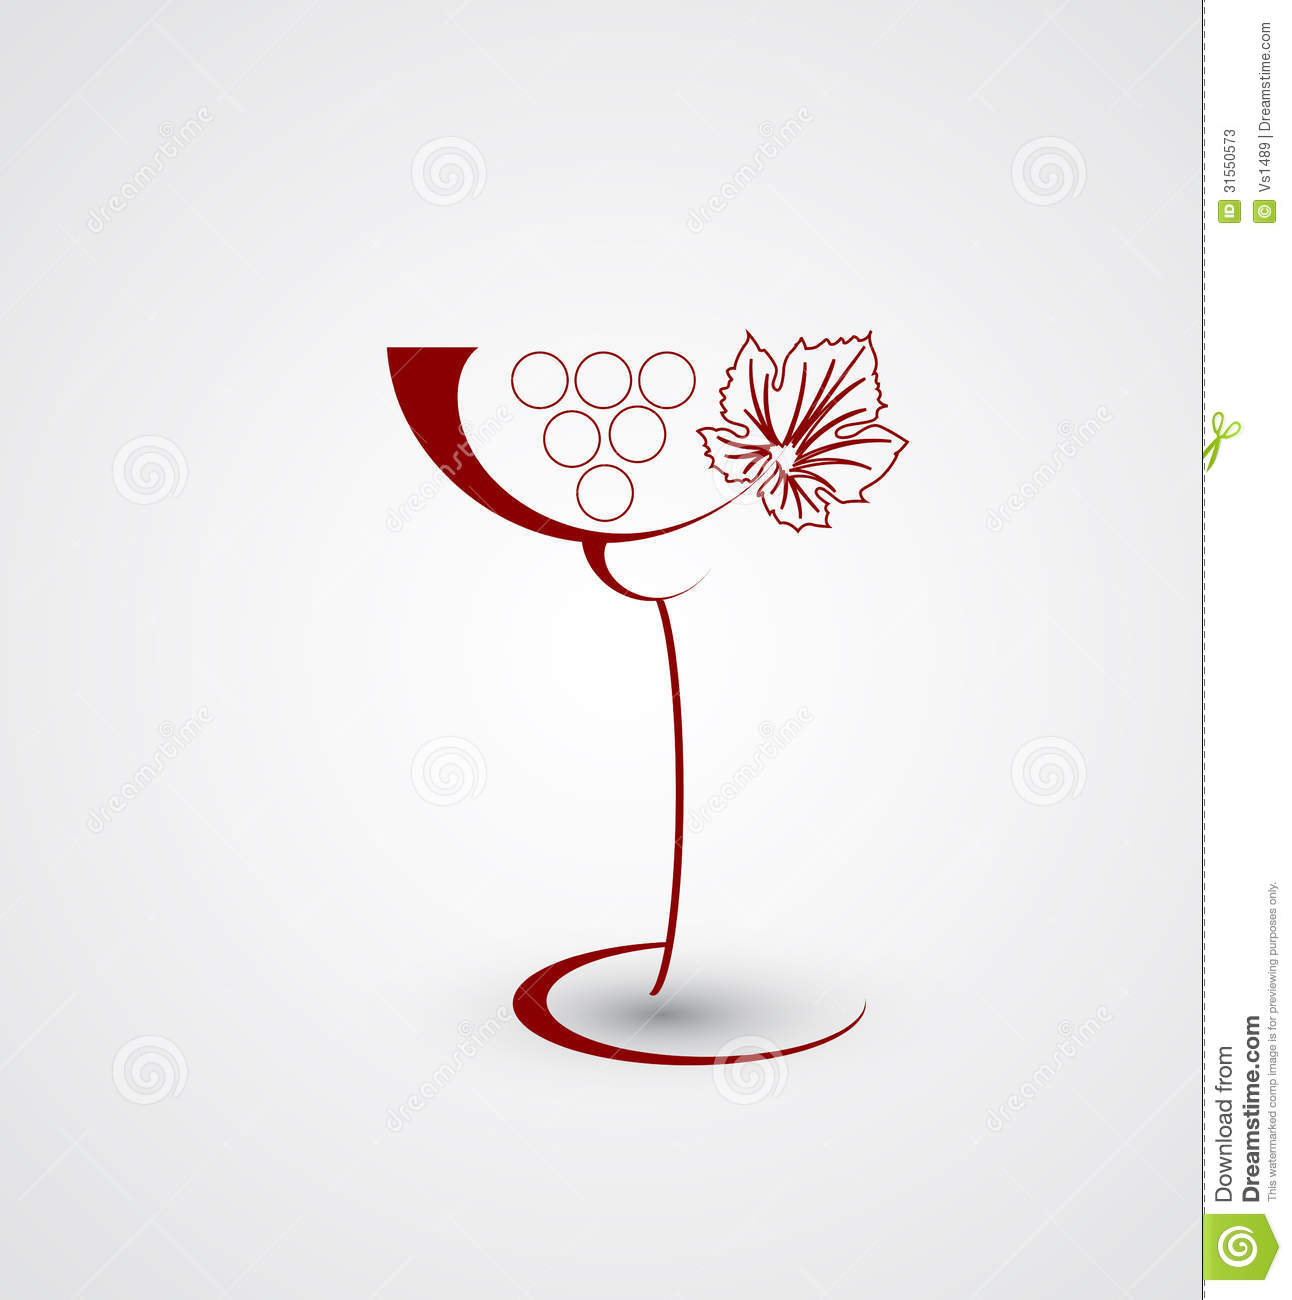 wine menu card design background stock illustrations – 4,831 wine